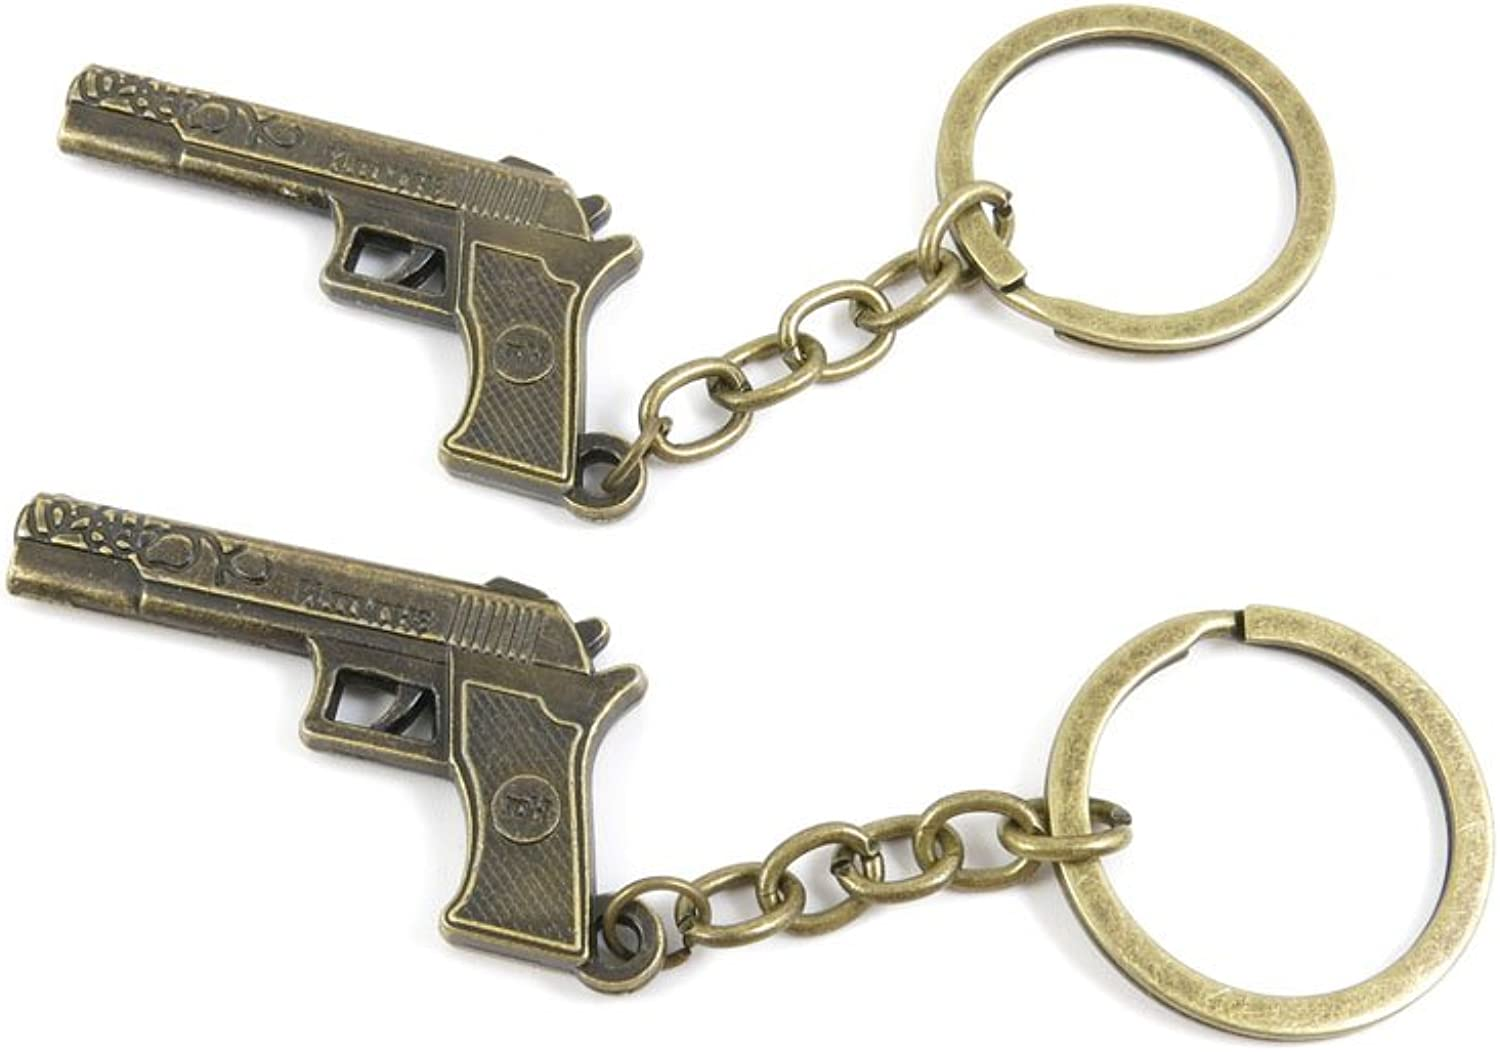 100 PCS Keyrings Keychains Key Ring Chains Tags Jewelry Findings Clasps Buckles Supplies I2RV7 Pistol Gun